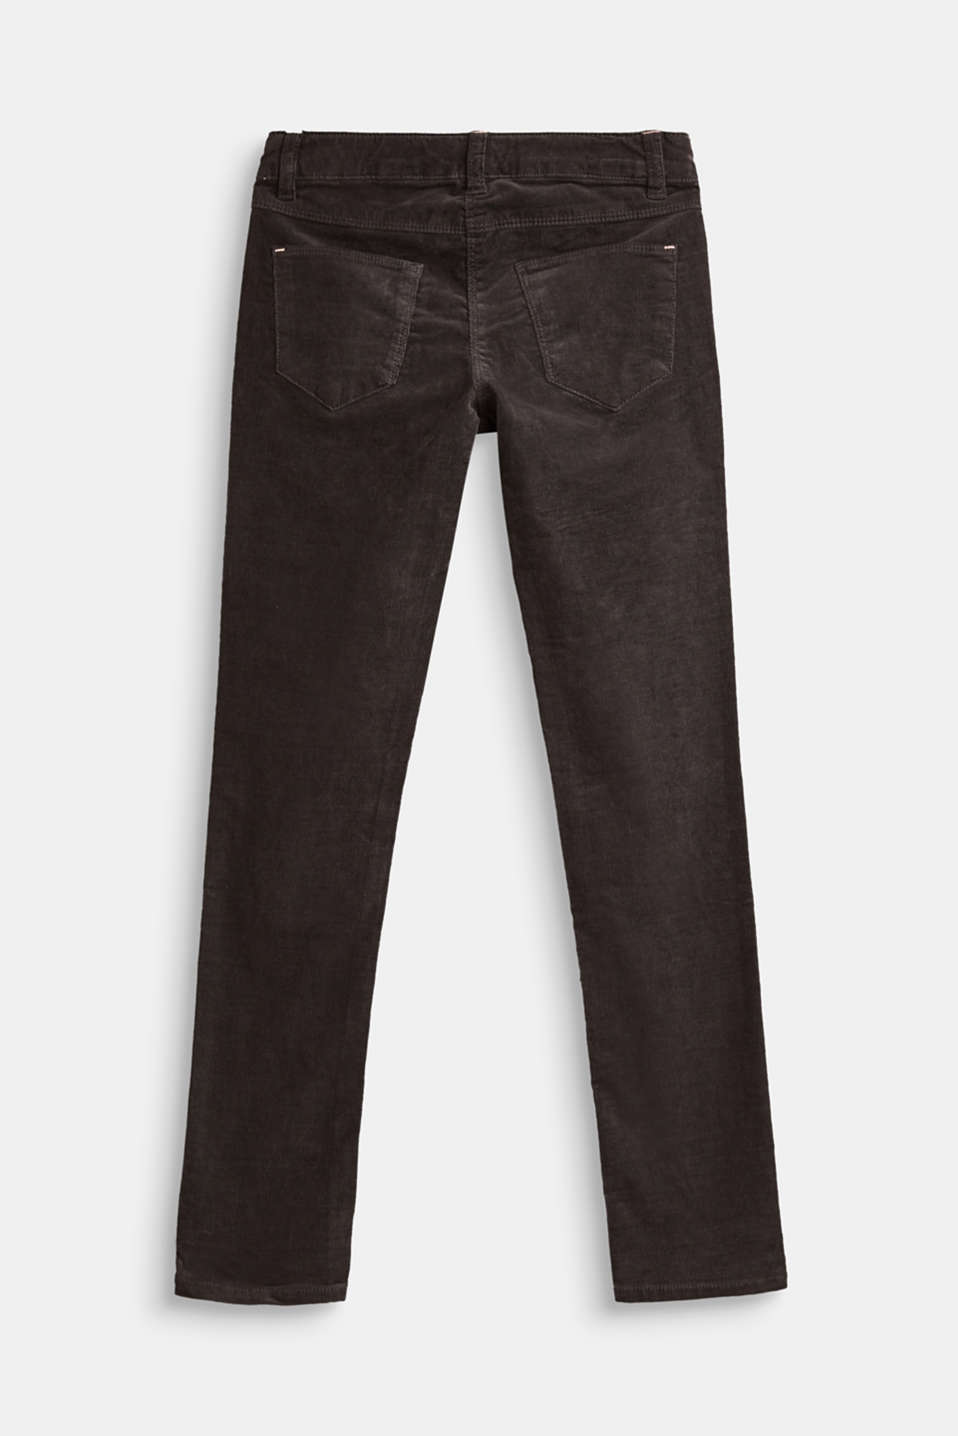 Pantalon en velours finement côtelé et stretch